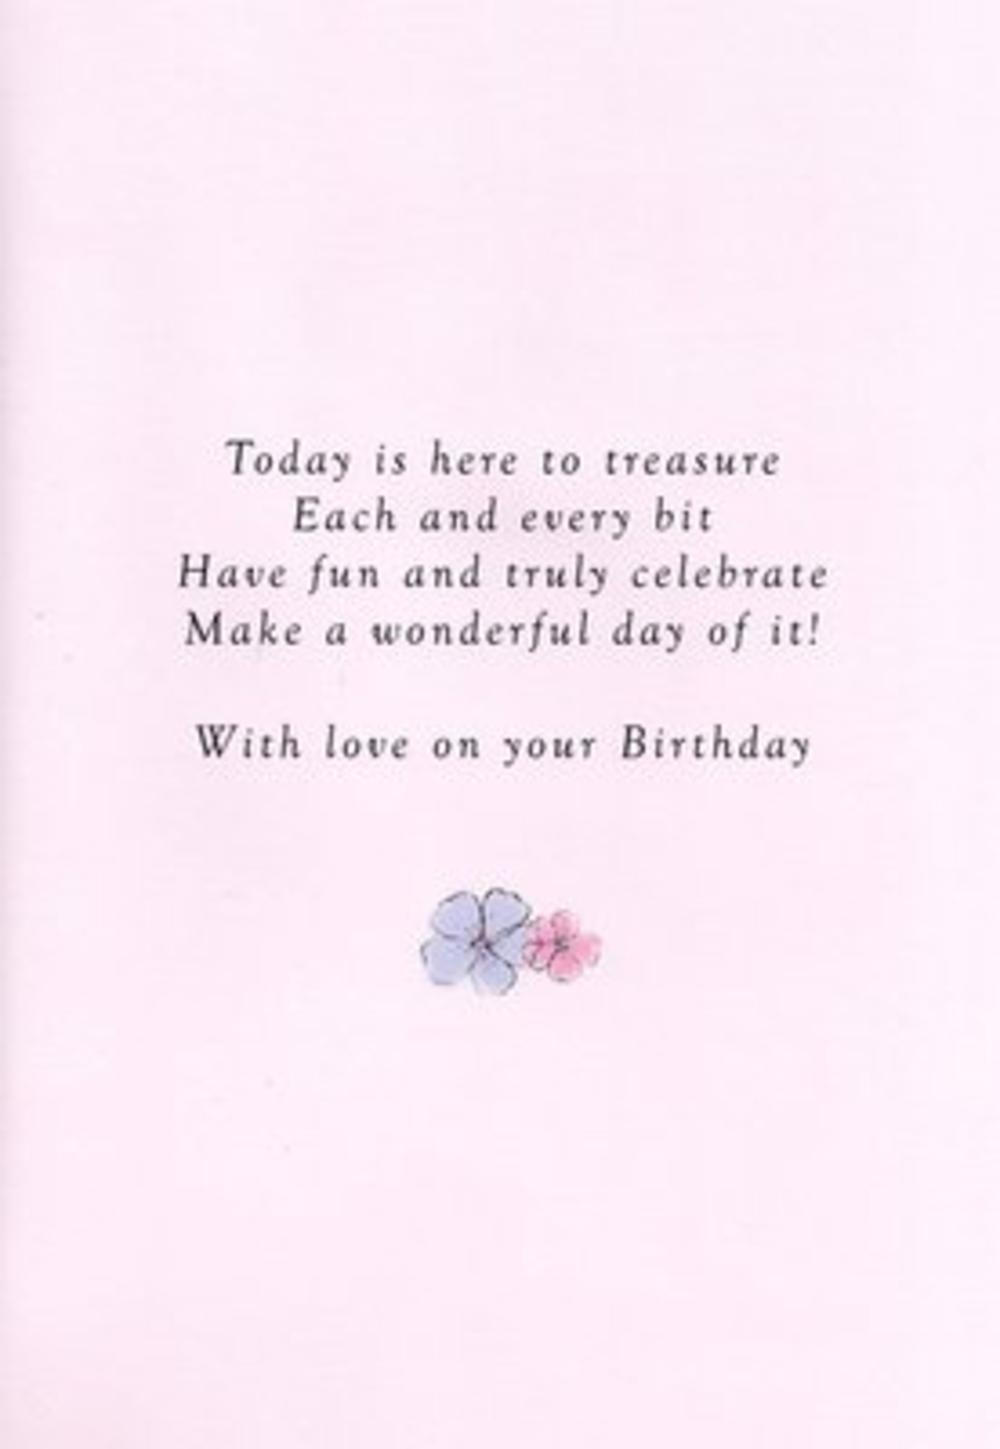 Mum Birthday Poetry In Motion Card Cards Love Kates